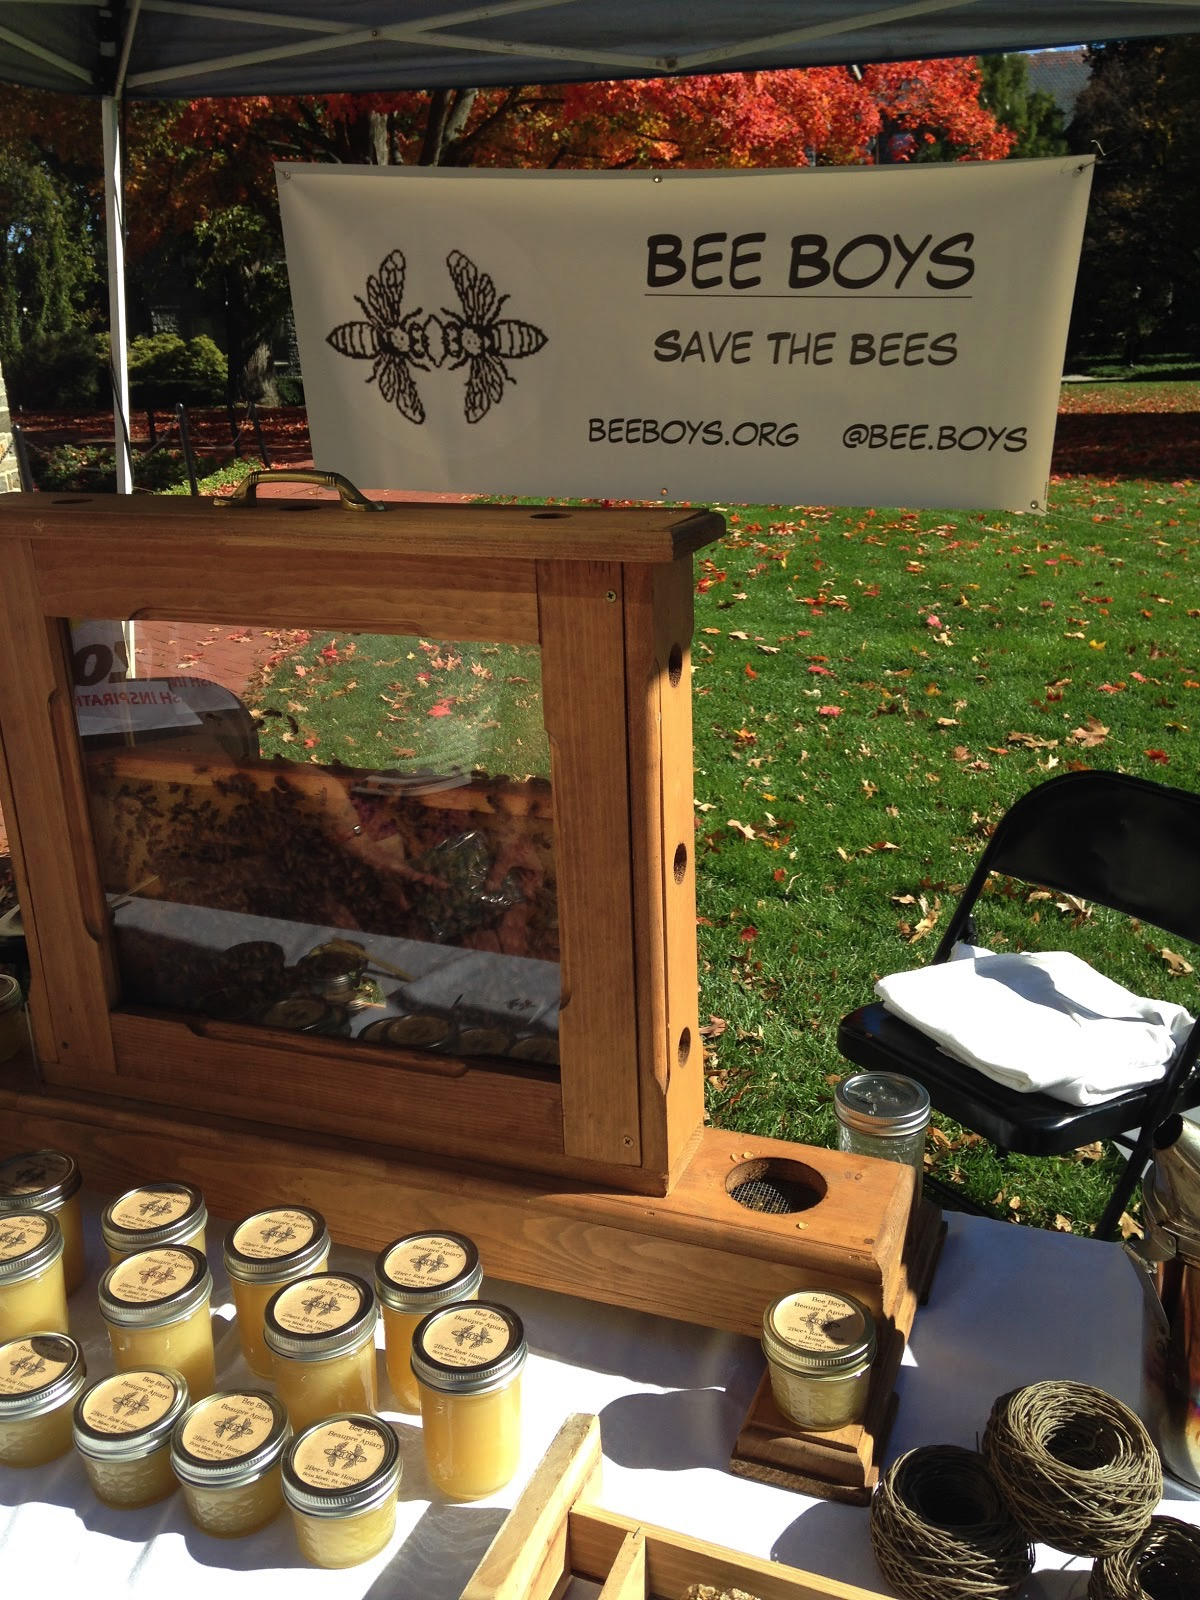 The display from Bee Boys included various products made with honey.